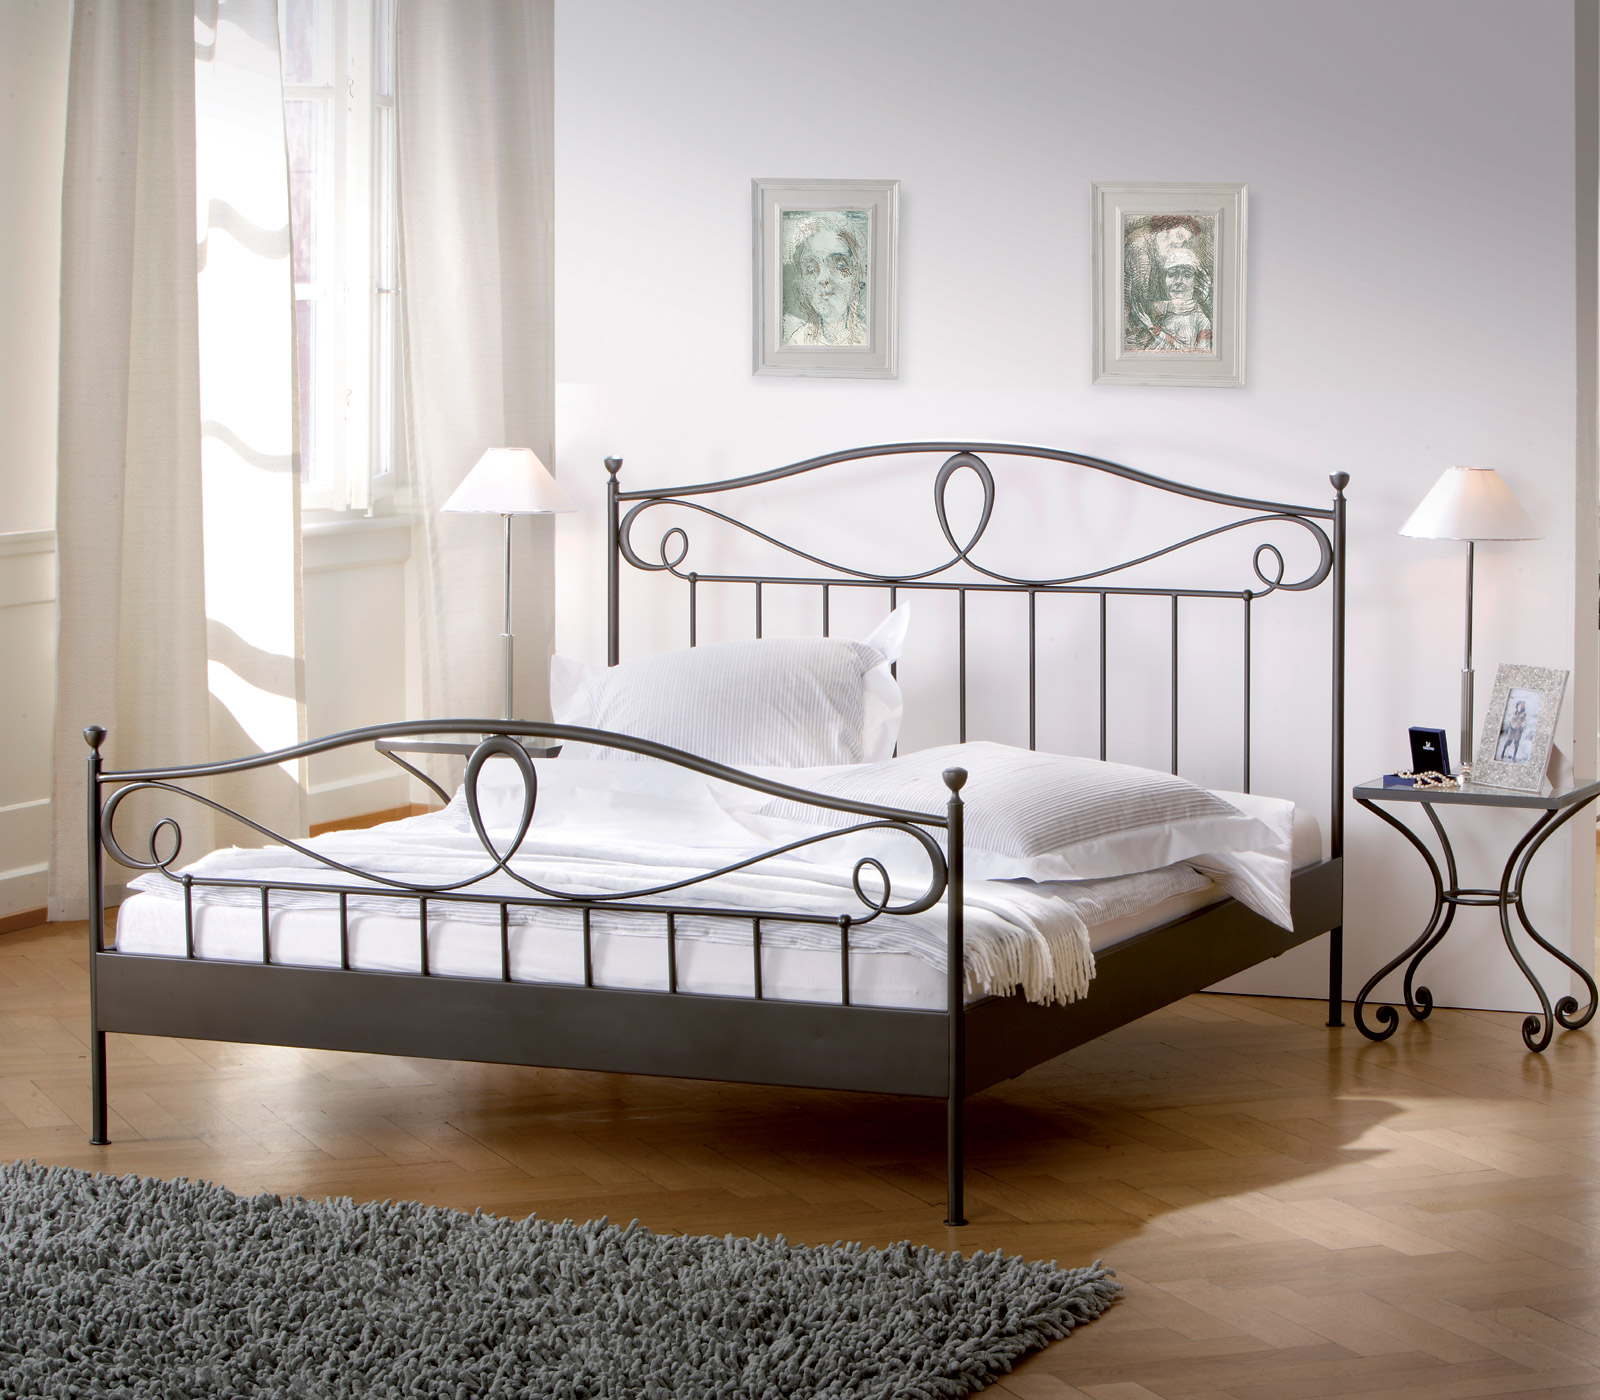 mediterranes metallbett in anthrazit oder wei piemonte. Black Bedroom Furniture Sets. Home Design Ideas